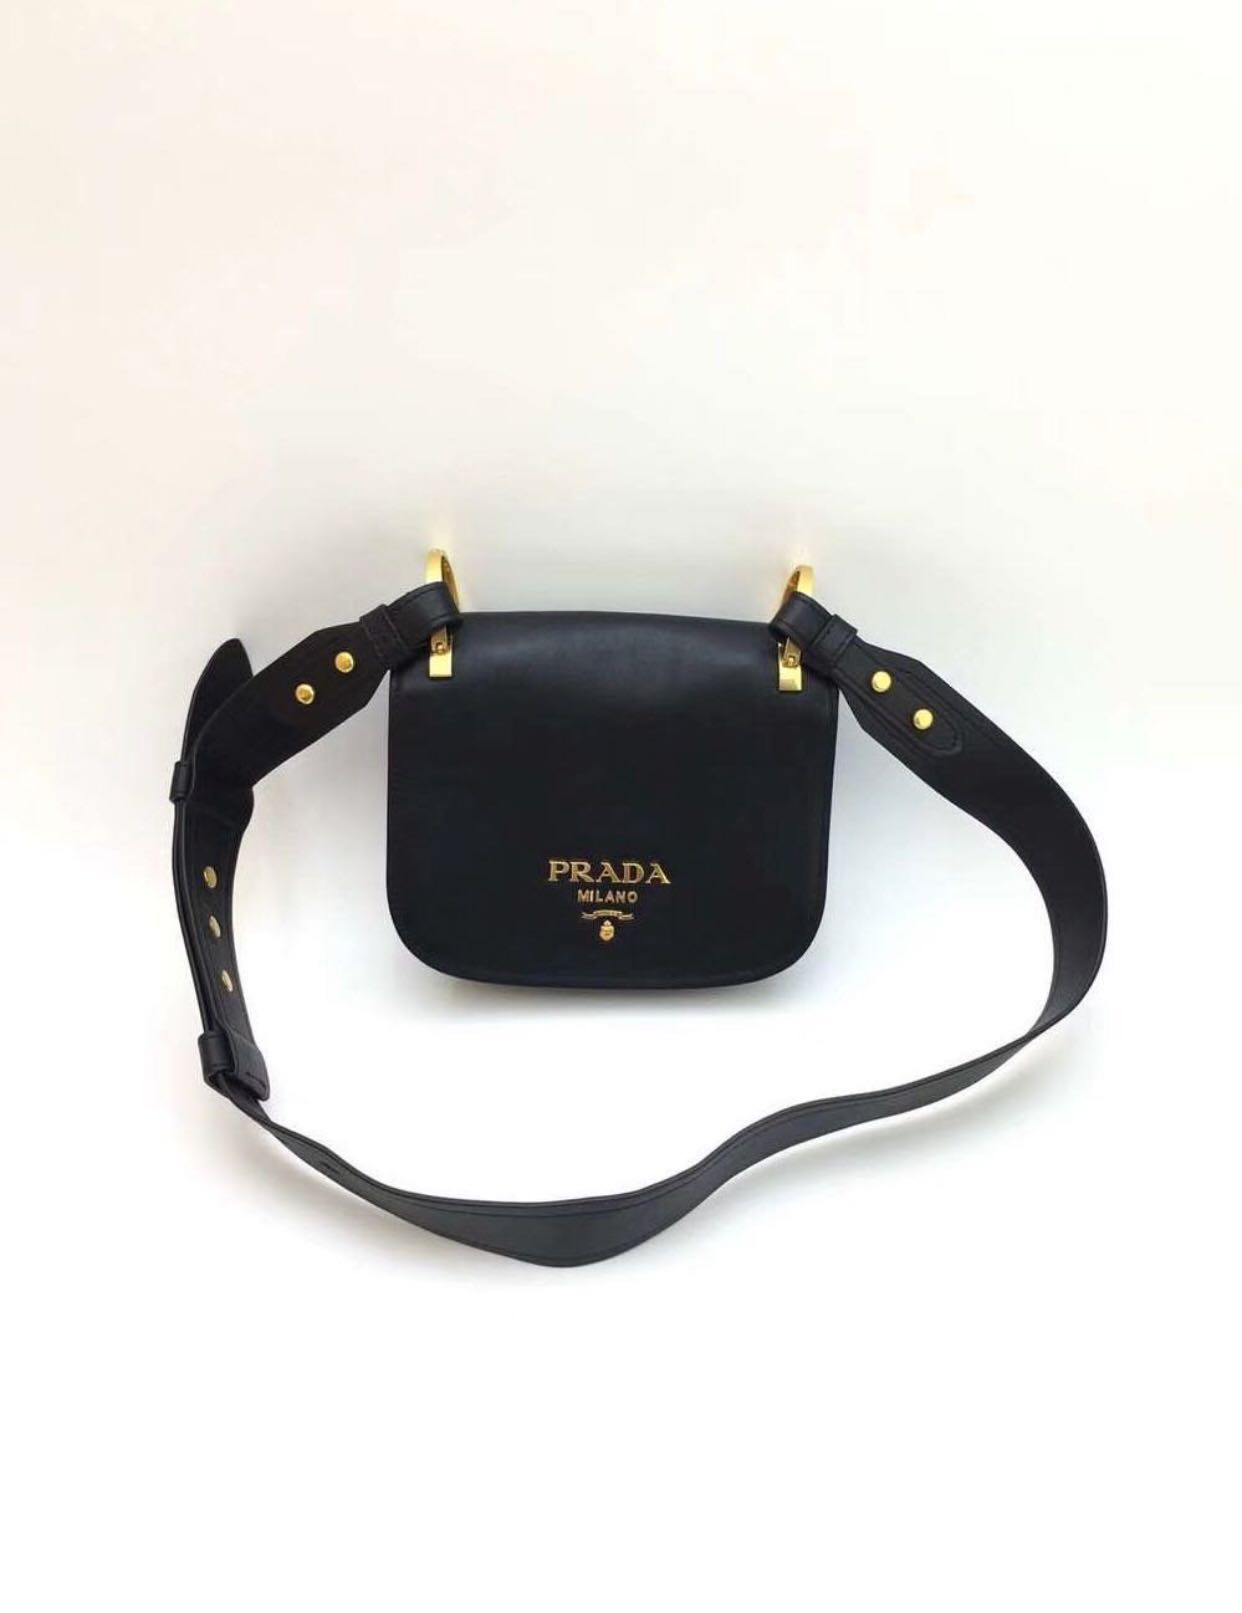 f06176f37efc Prada bag [SALE], Luxury, Bags & Wallets, Handbags on Carousell